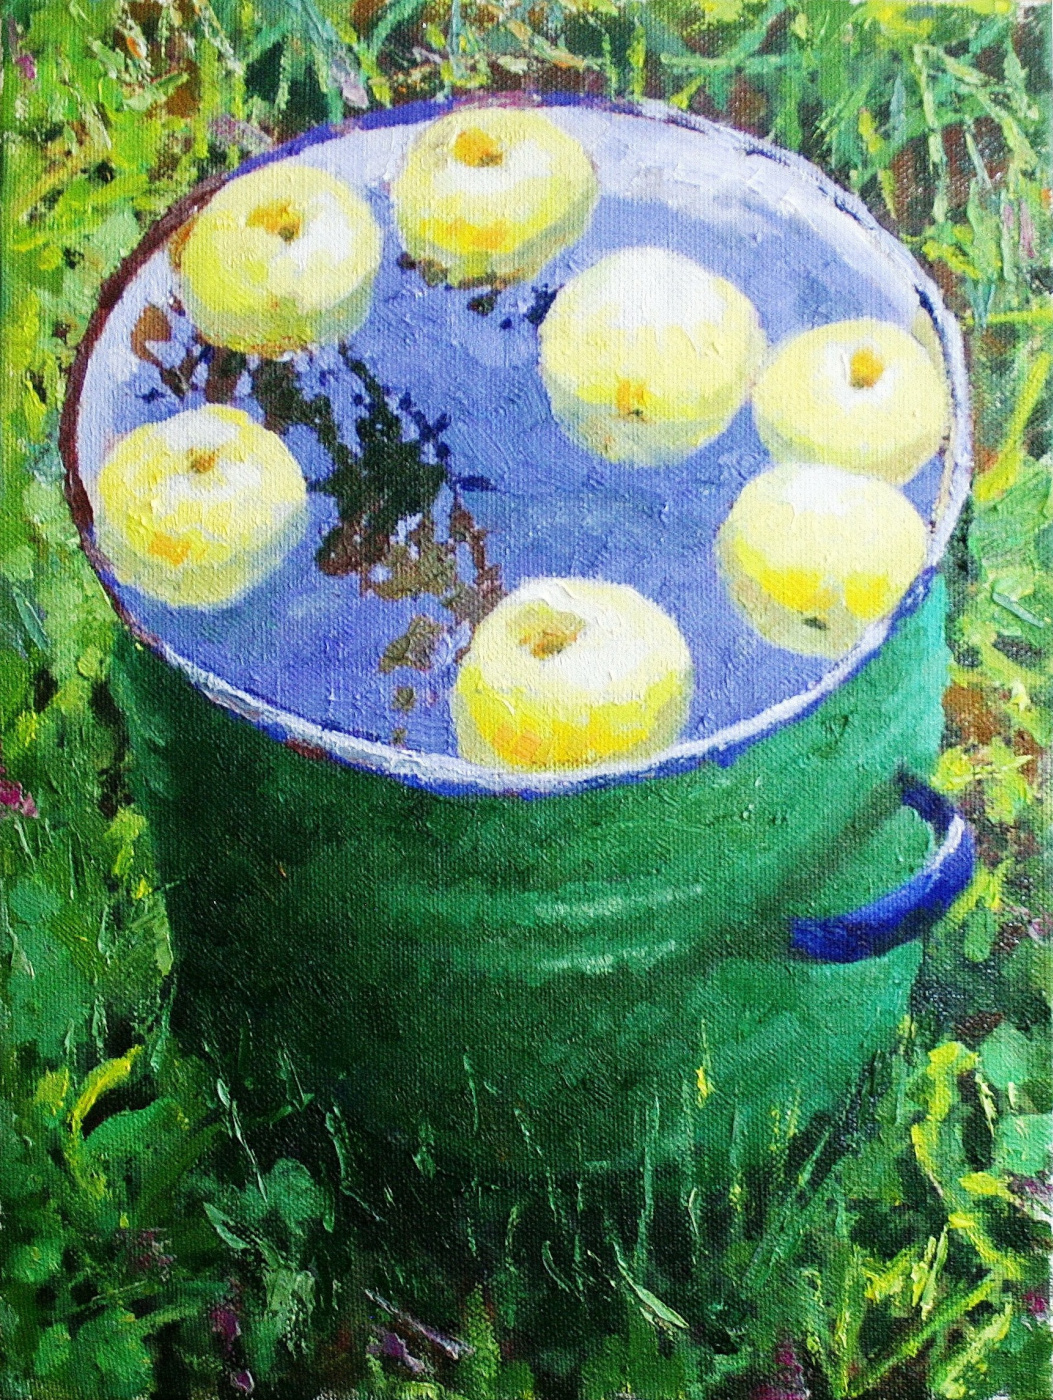 Михаил Рудник. Apples on the water